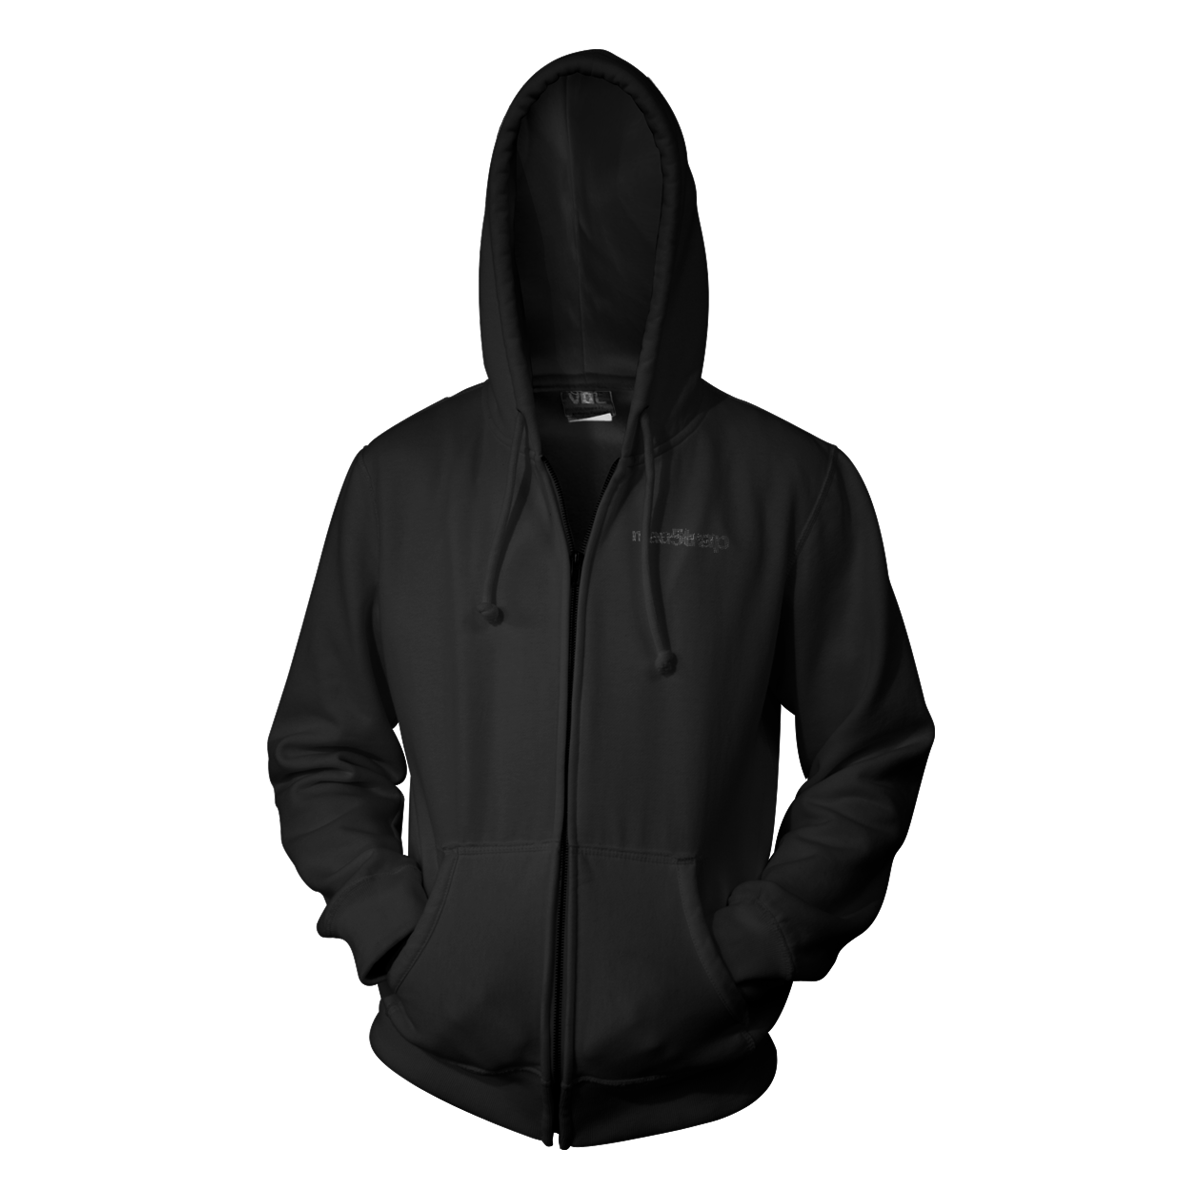 Mau5trap Debuts Brand New Merch Collection Jaket Hoodie Dj Armin Van Buuren 6 Beginning With The Glitch Zip Up A Simple Black Small Gray Logo On Front And Larger Back